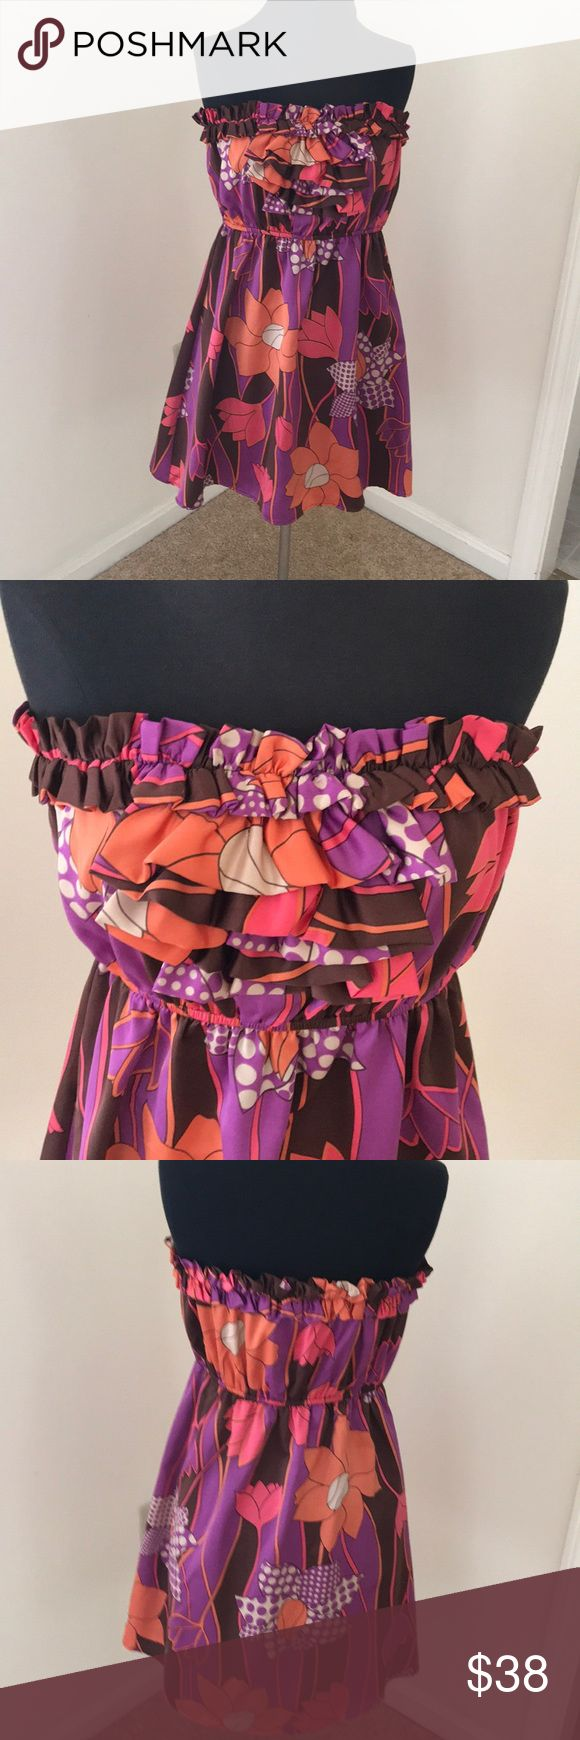 Judith March Brown/ violet Combo Strapless Dress Judith March violet/ Brown Combo Strapless Ruffled Large Dress Judith March Dresses Strapless